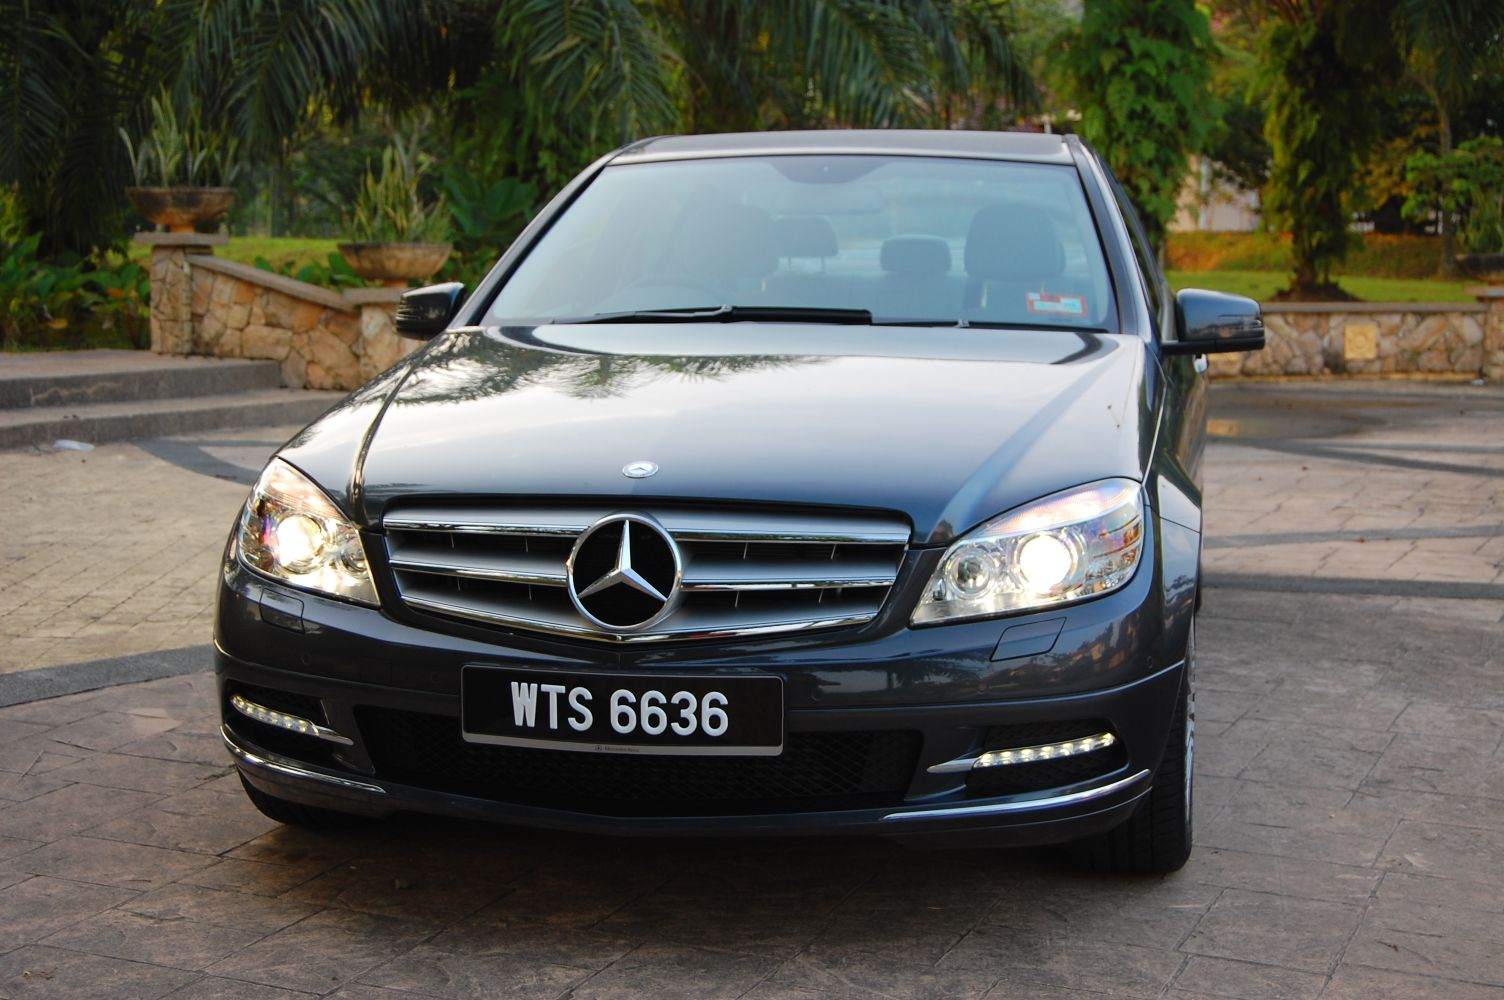 For wheels tried tested mercedes benz c250 cgi for 2010 mercedes benz c250